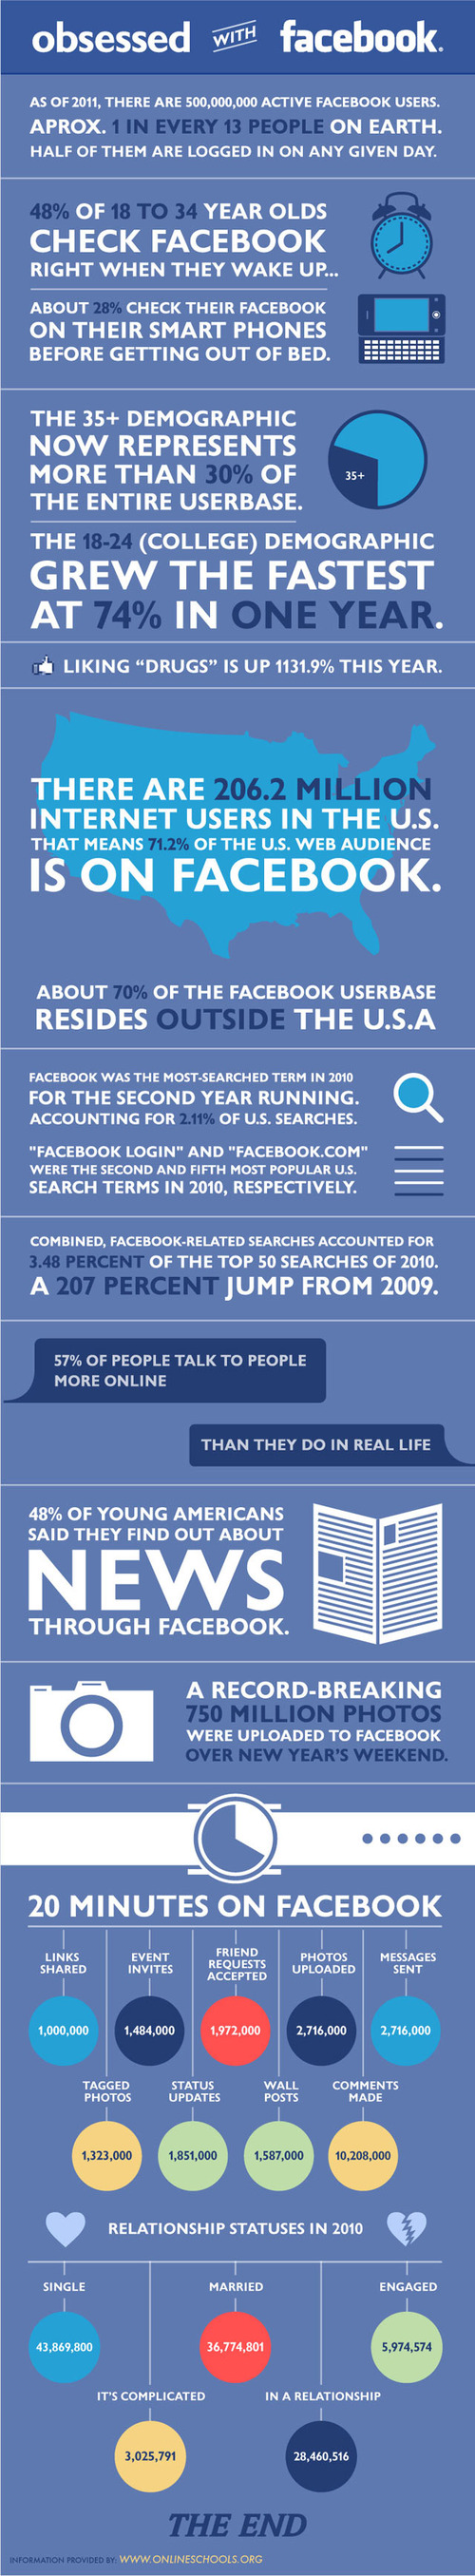 Obsessed with Facebook Infographic